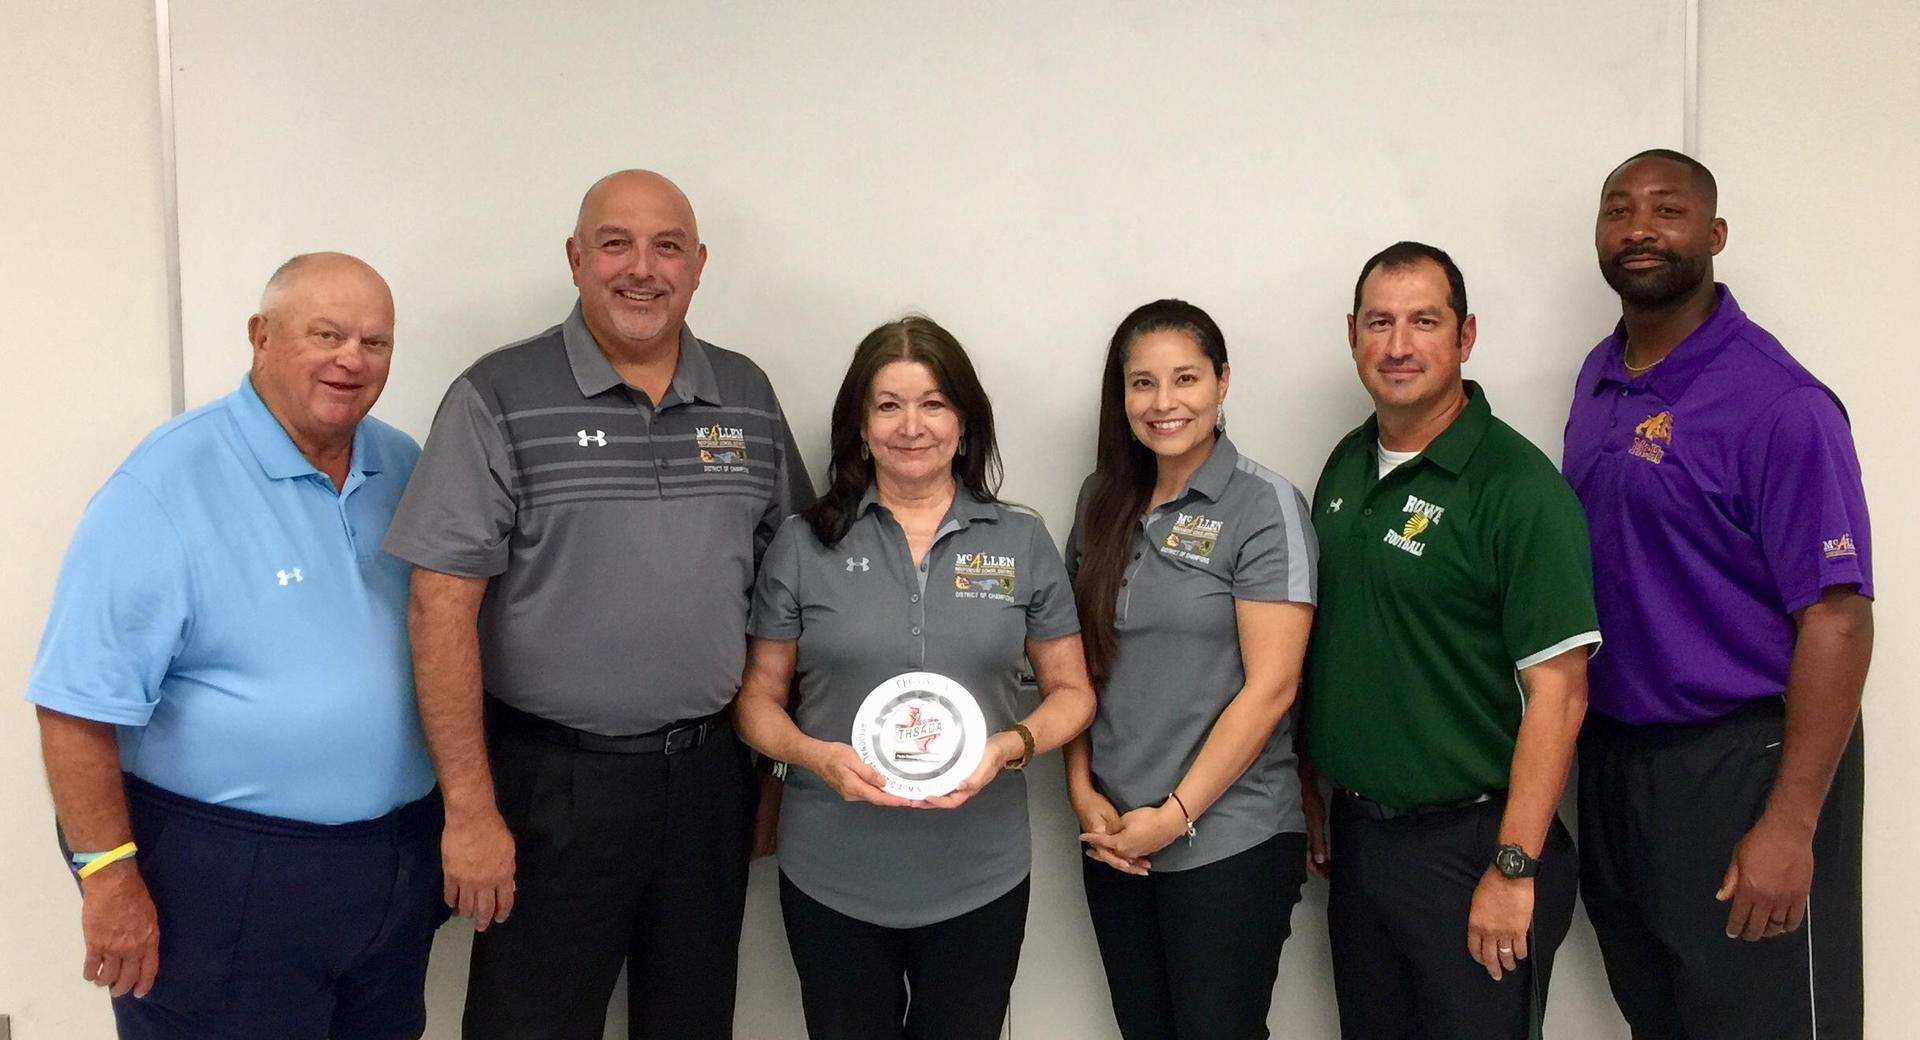 Paula Gonzalez Awarded Region 7 THSADA Athletic Administrator of the Year